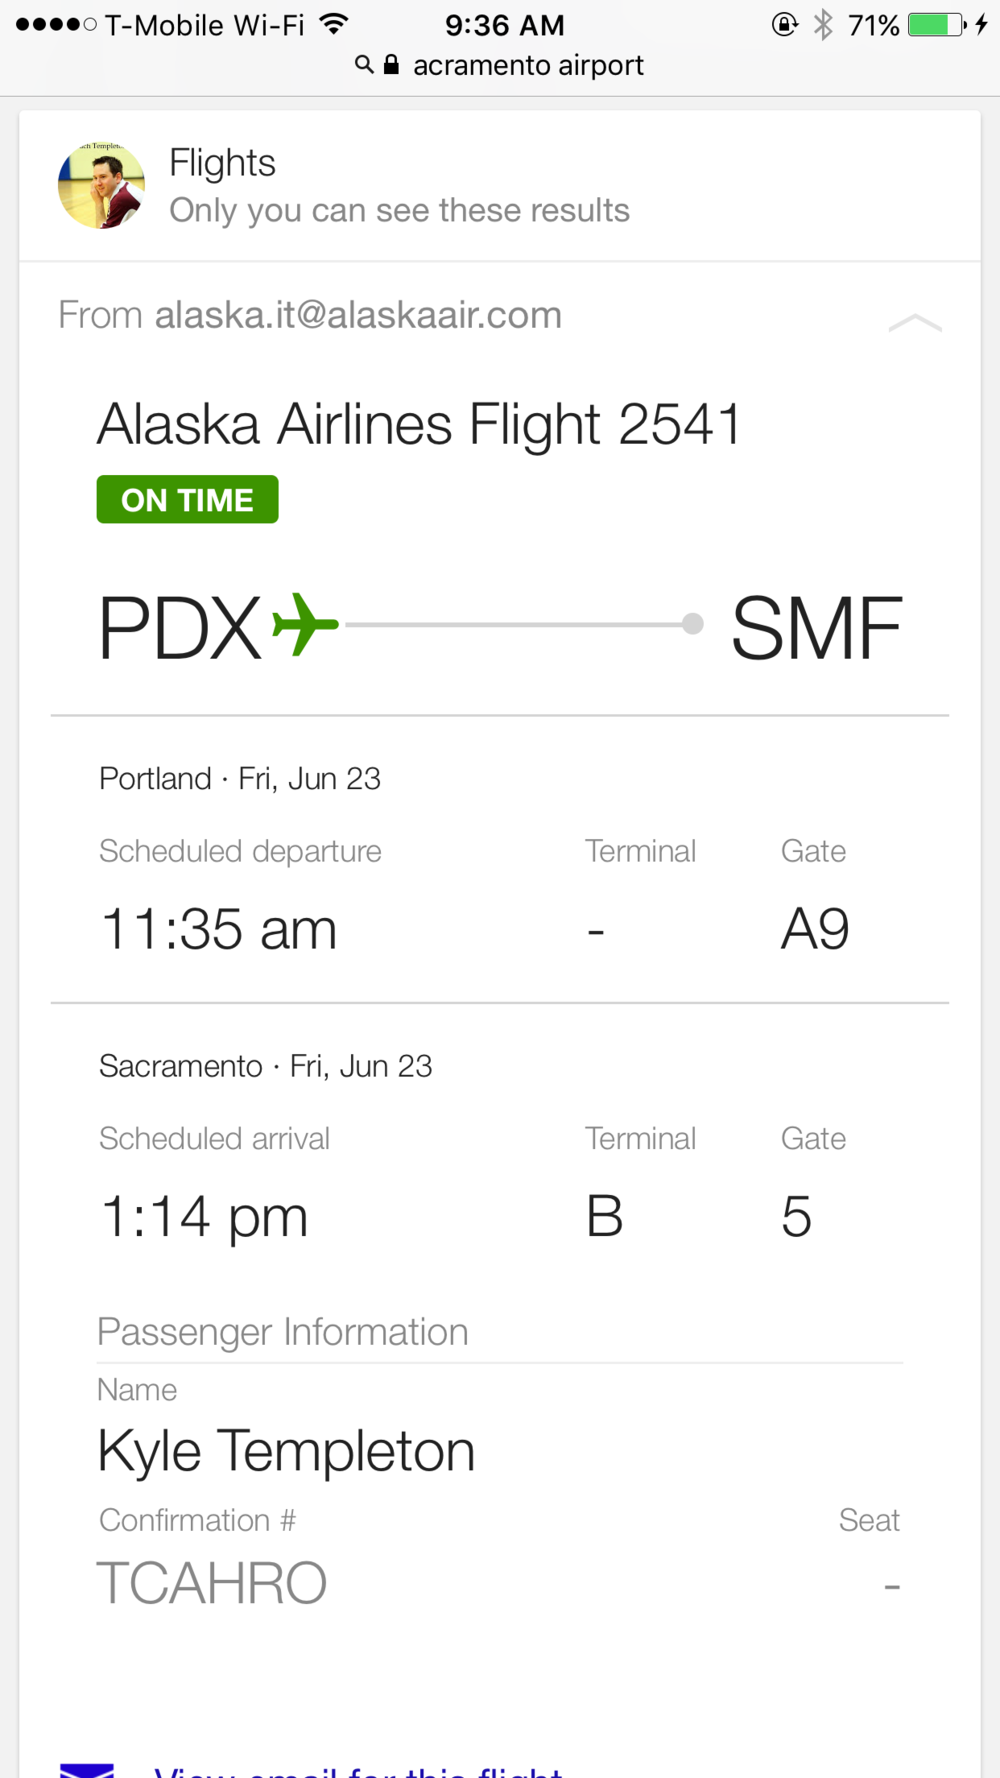 The second leg of my trip is Portland to Sacramento and the flight takes 99 minutes!